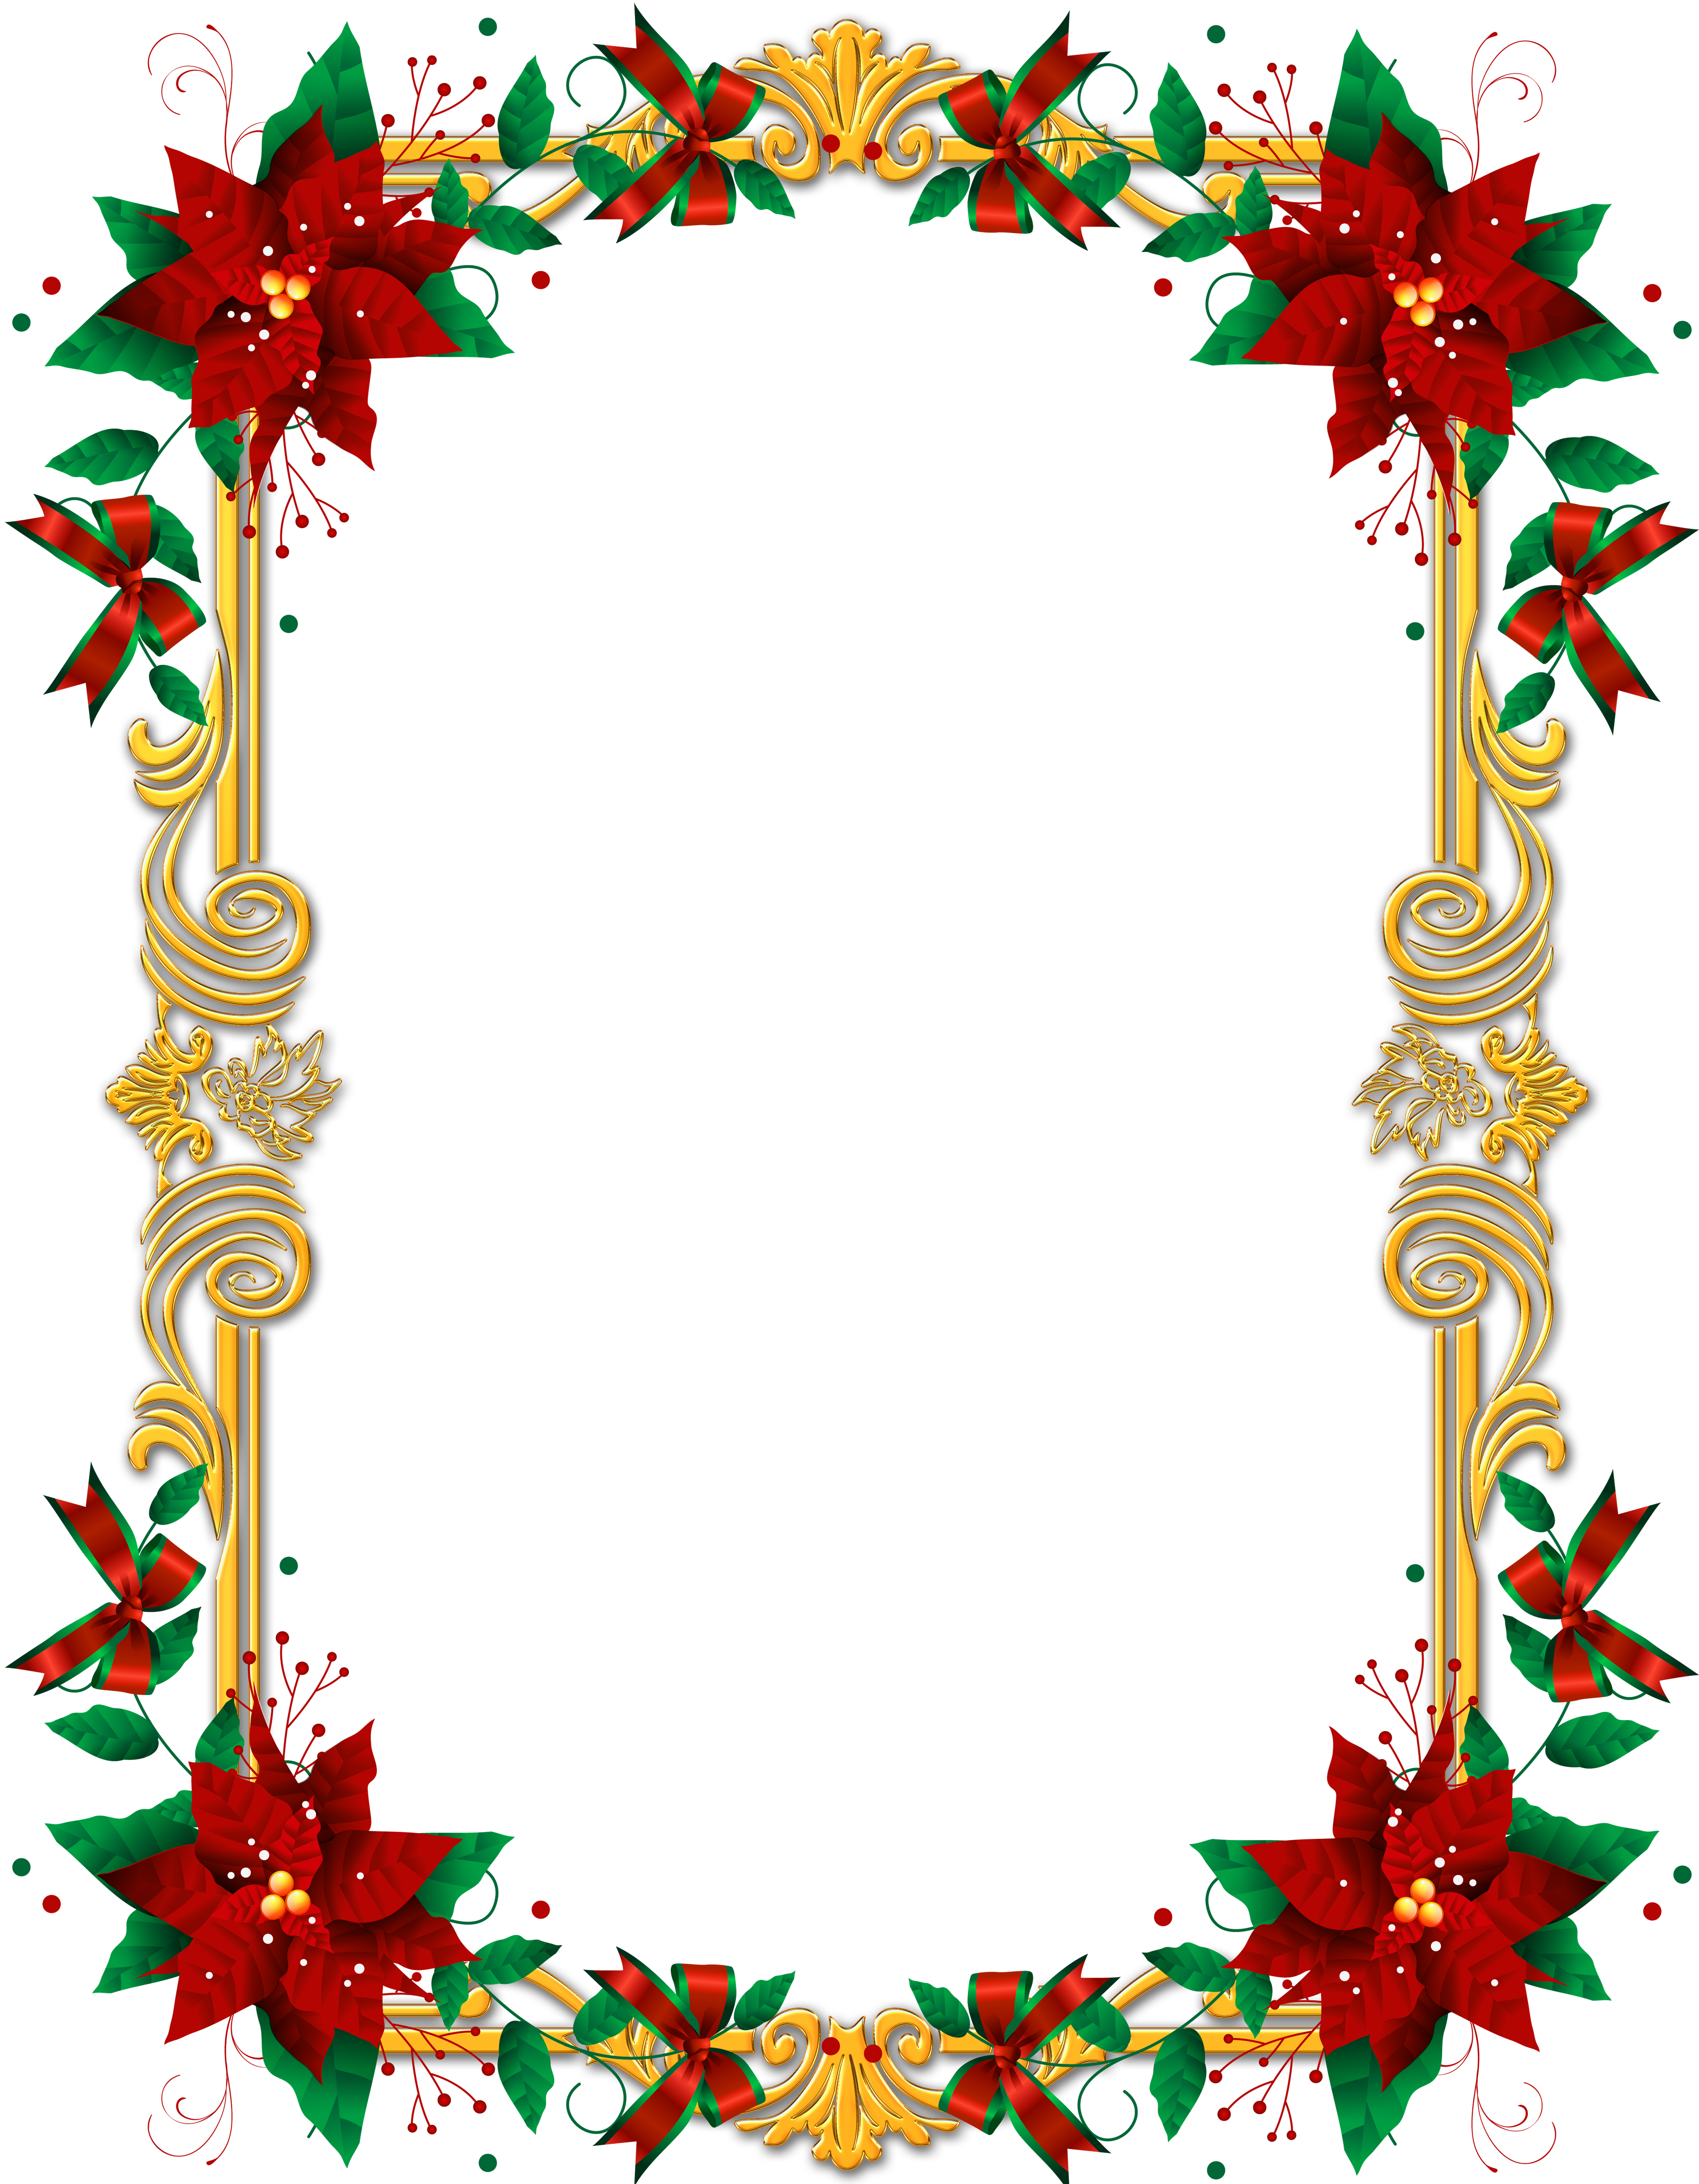 Transparent PNG Christmas Frame with Poinsettia.